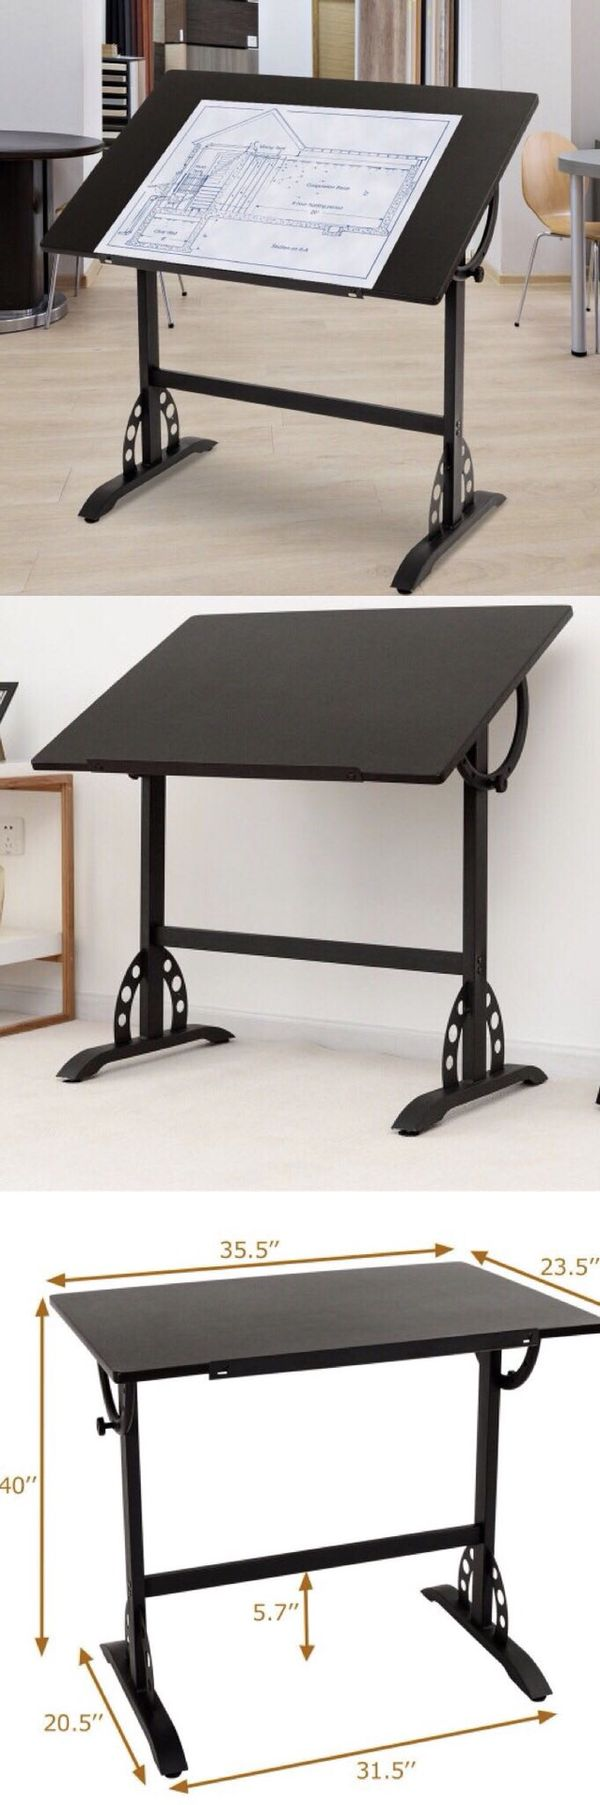 new in box adjustable drafting drawing sketching desk design studio